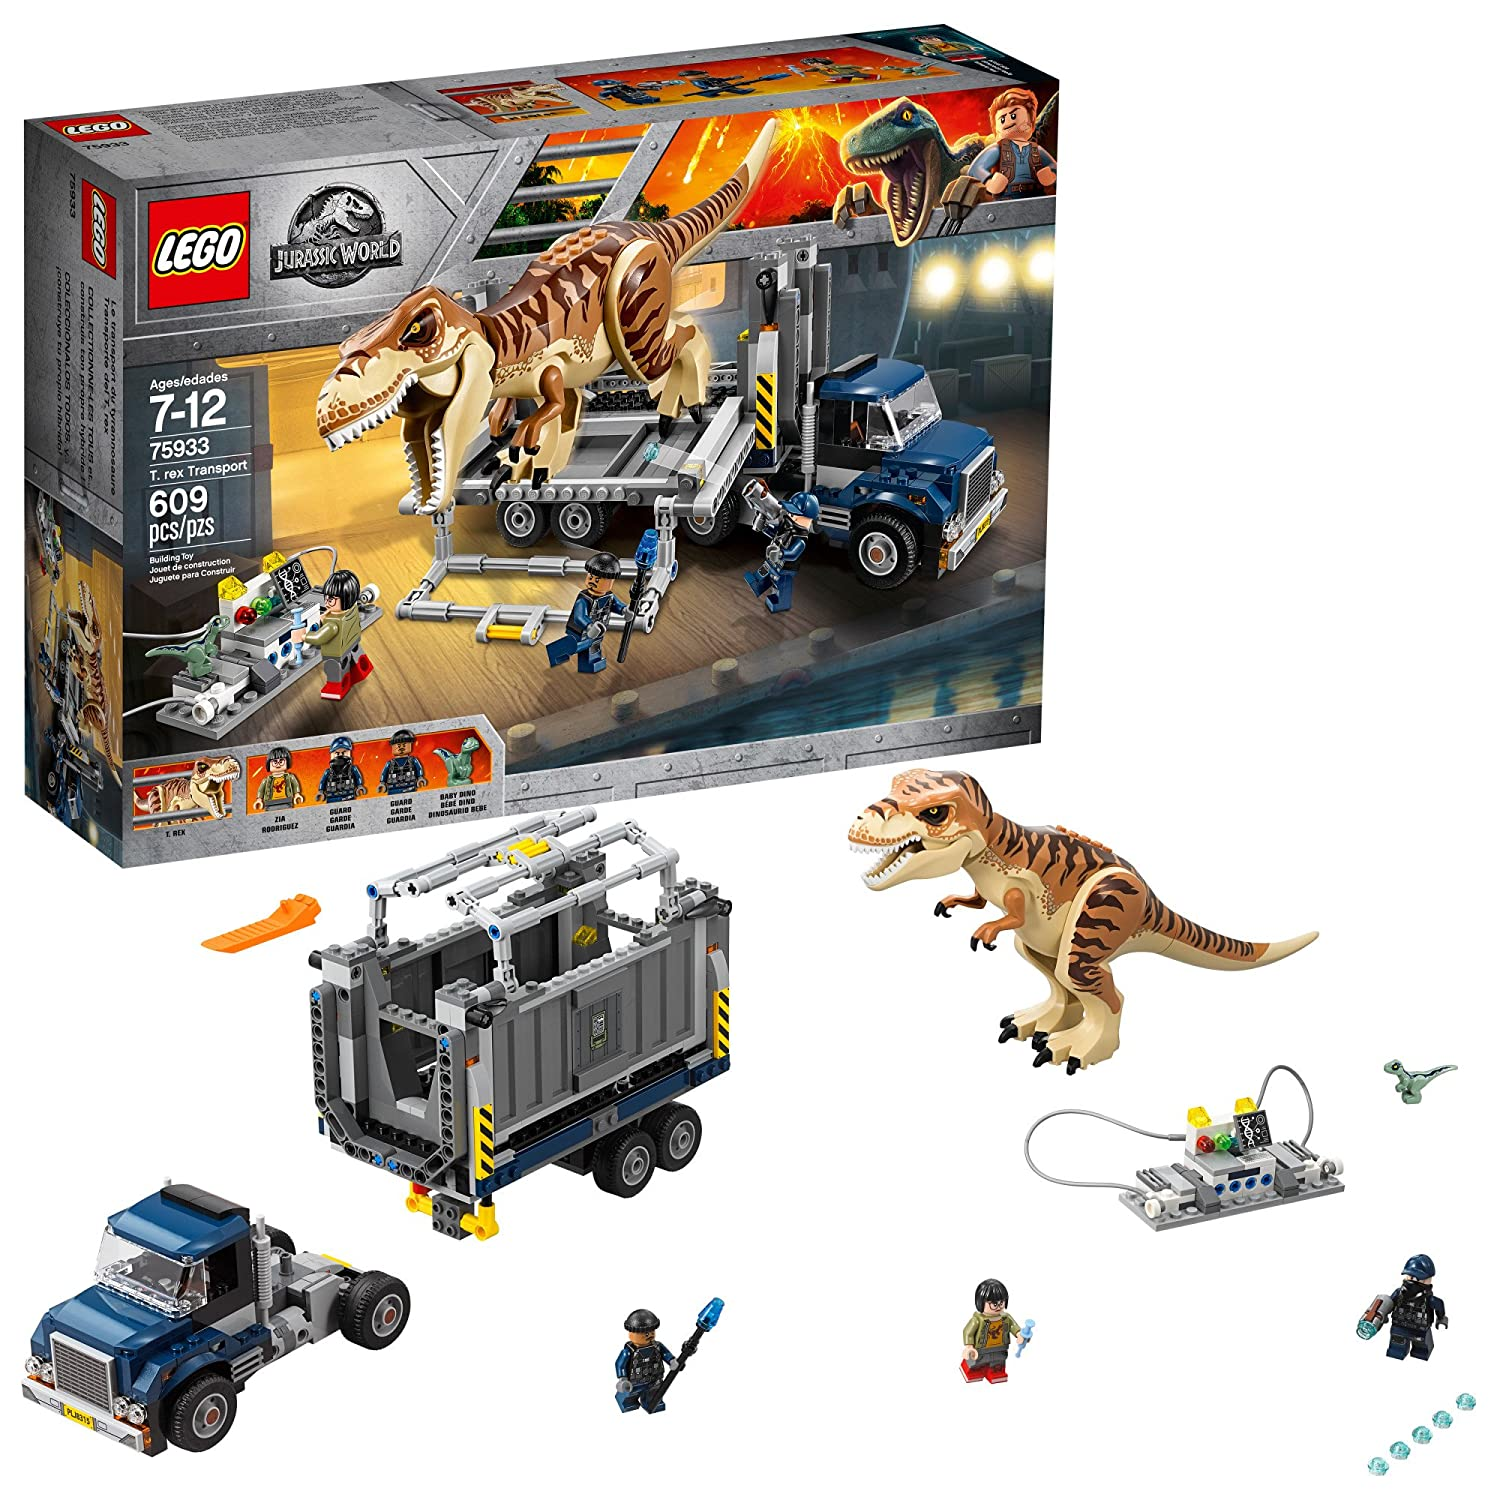 Top 9 Best Lego Jurassic Park Sets Reviews in 2020 1